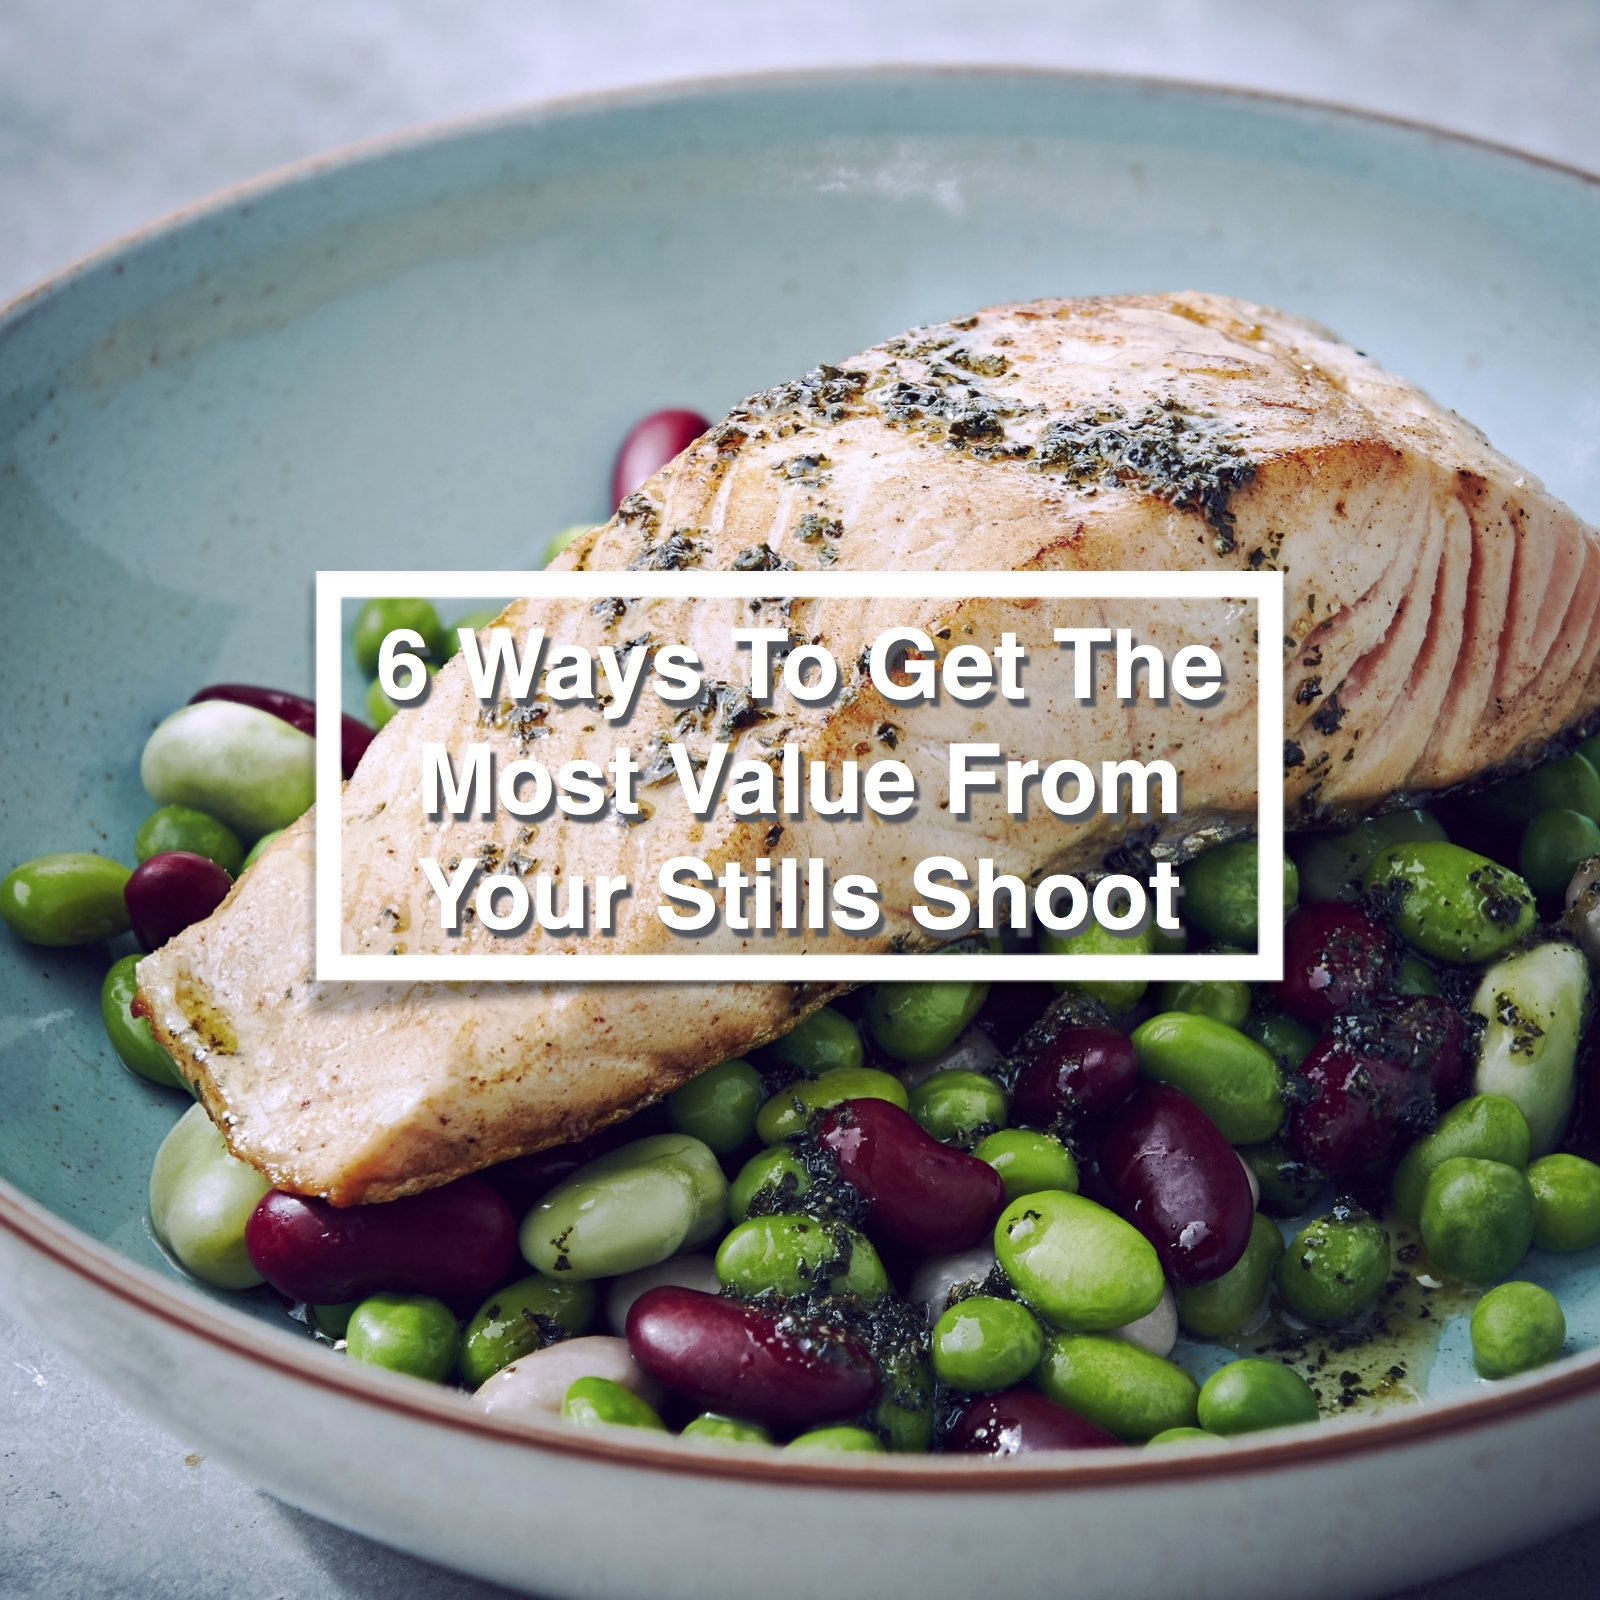 6 Ways To Get The Most Value From Your Shoot     Feb 2018   Whether you're managing a food, fashion or lifestyle campaign, a lot can rest on the final result so you want to make sure you're nailing your visual content. We've compiled a few simple tips to get the most value out of your next shoot.